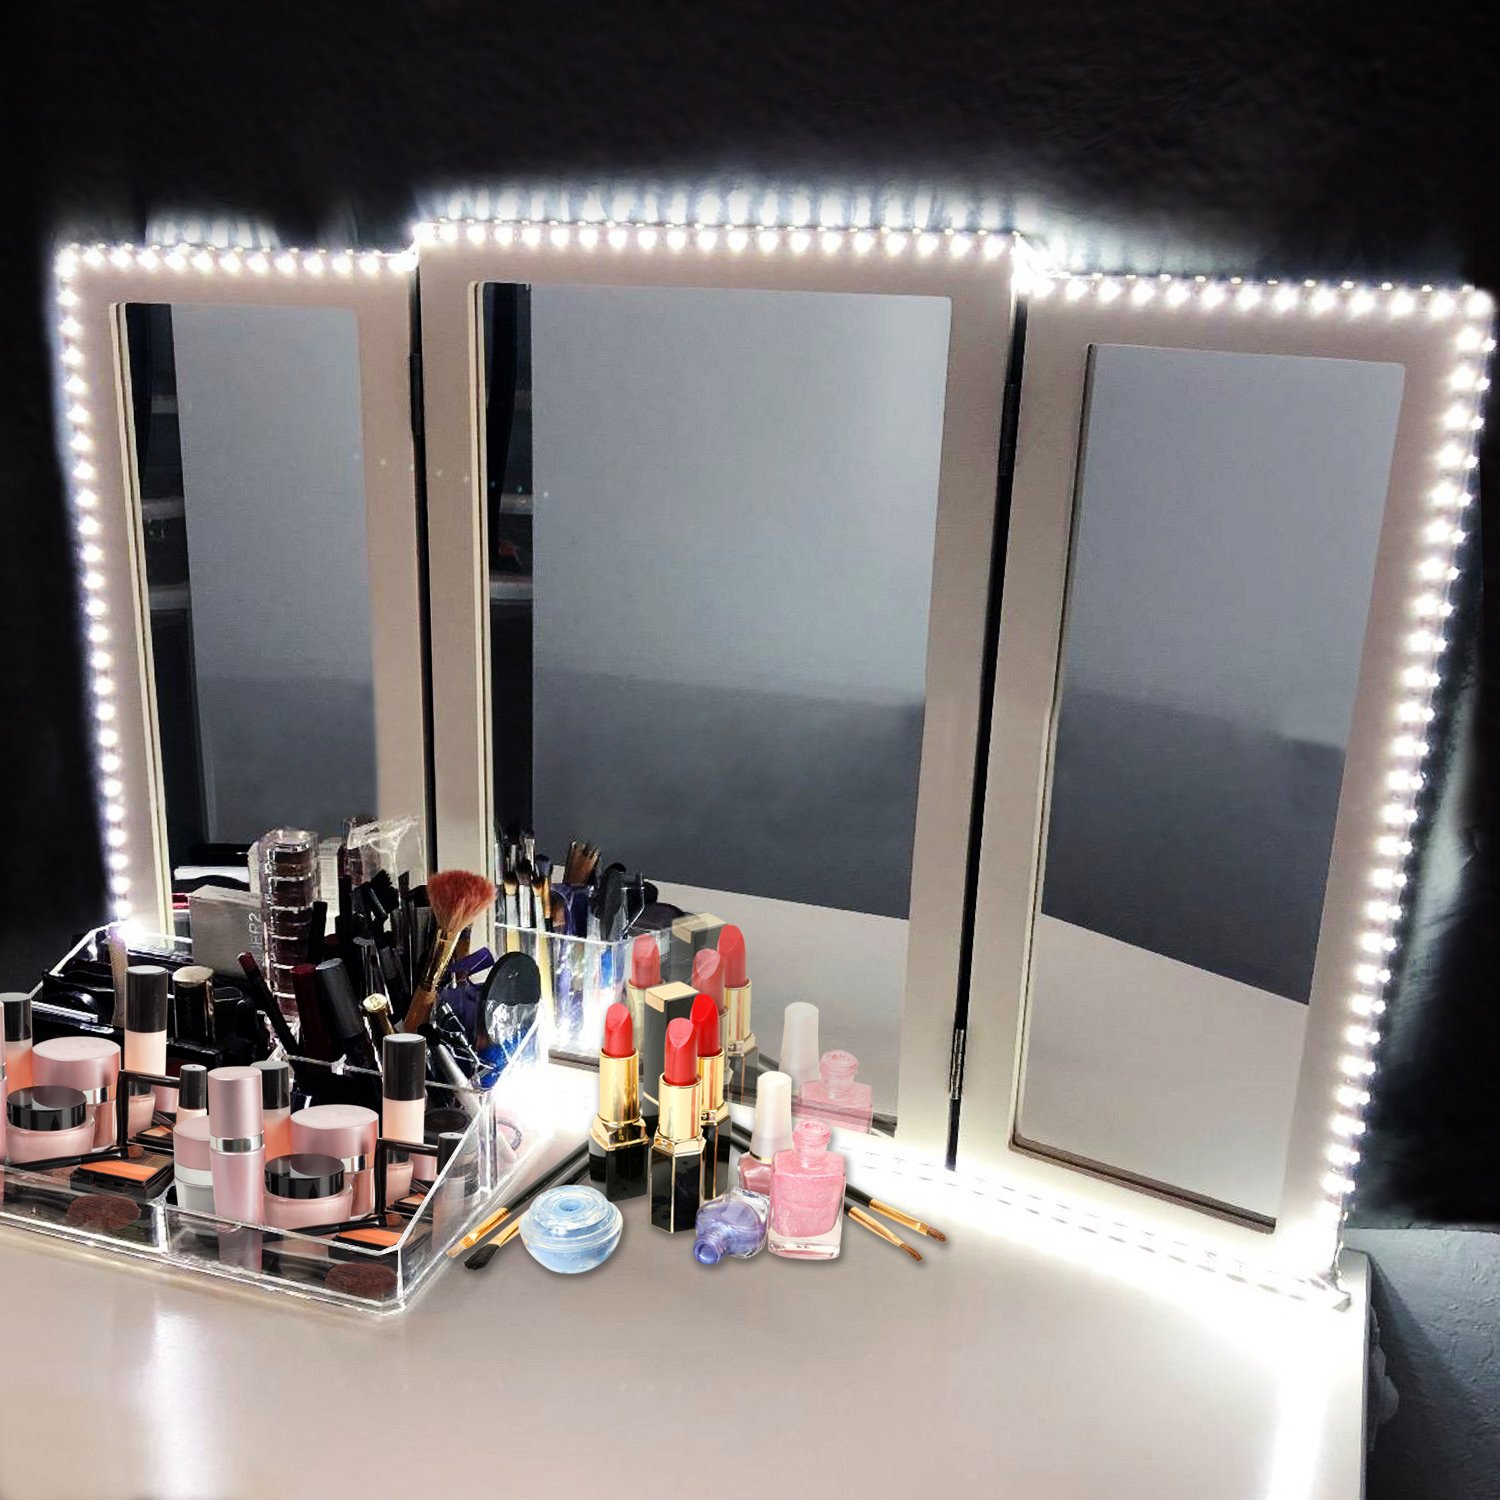 LED Vanity Mirror Lights Kit, Magicfly 13Ft 240 LEDs Make-up Vanity Mirror Light with Dimmer and Power Supply for Makeup Table Set, Flexible DIY Hollywood Style Mirror, Mirror not Included